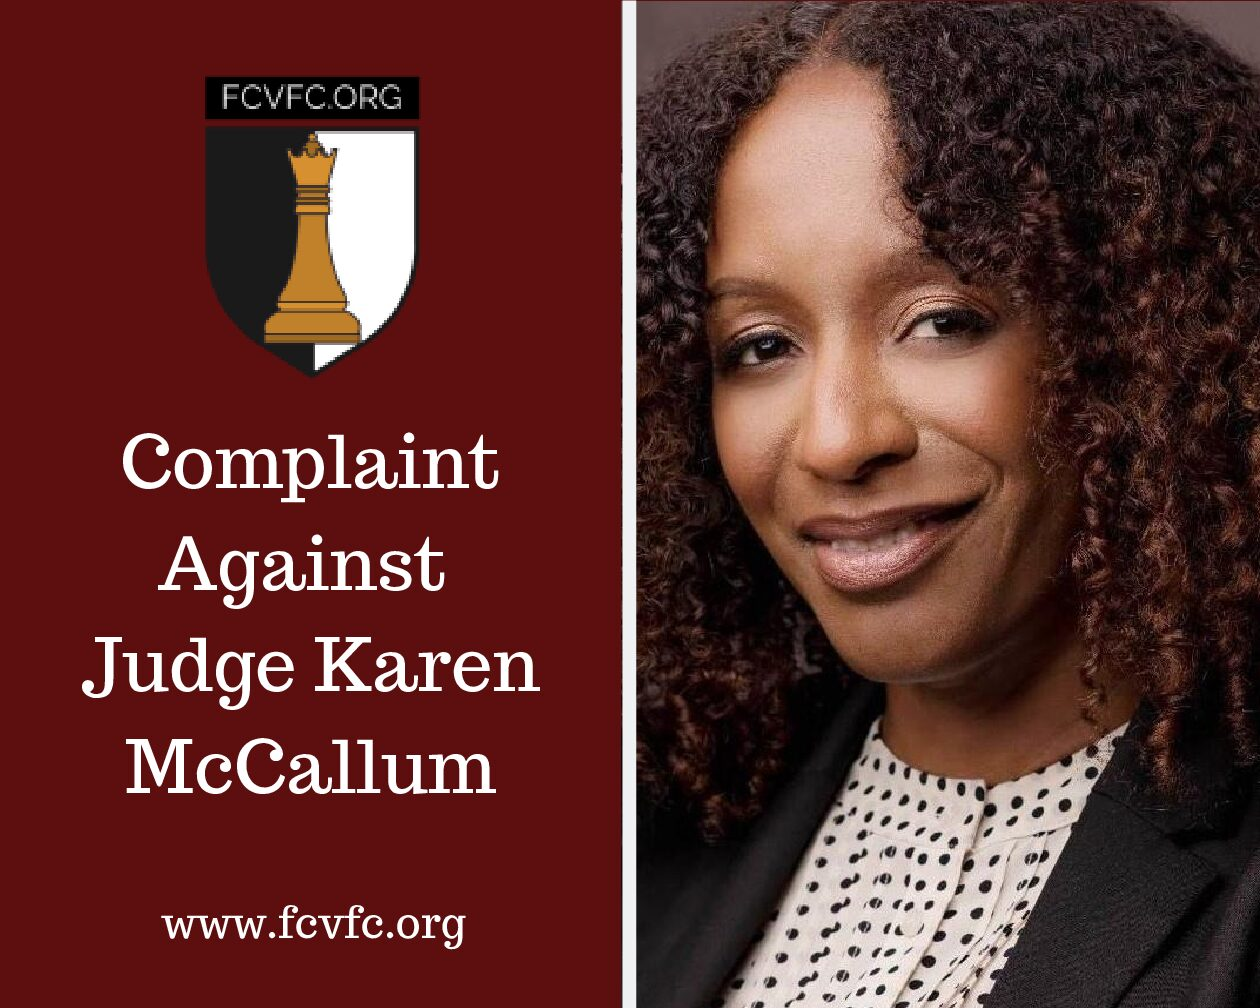 Complaint against Judge Karen McCallum